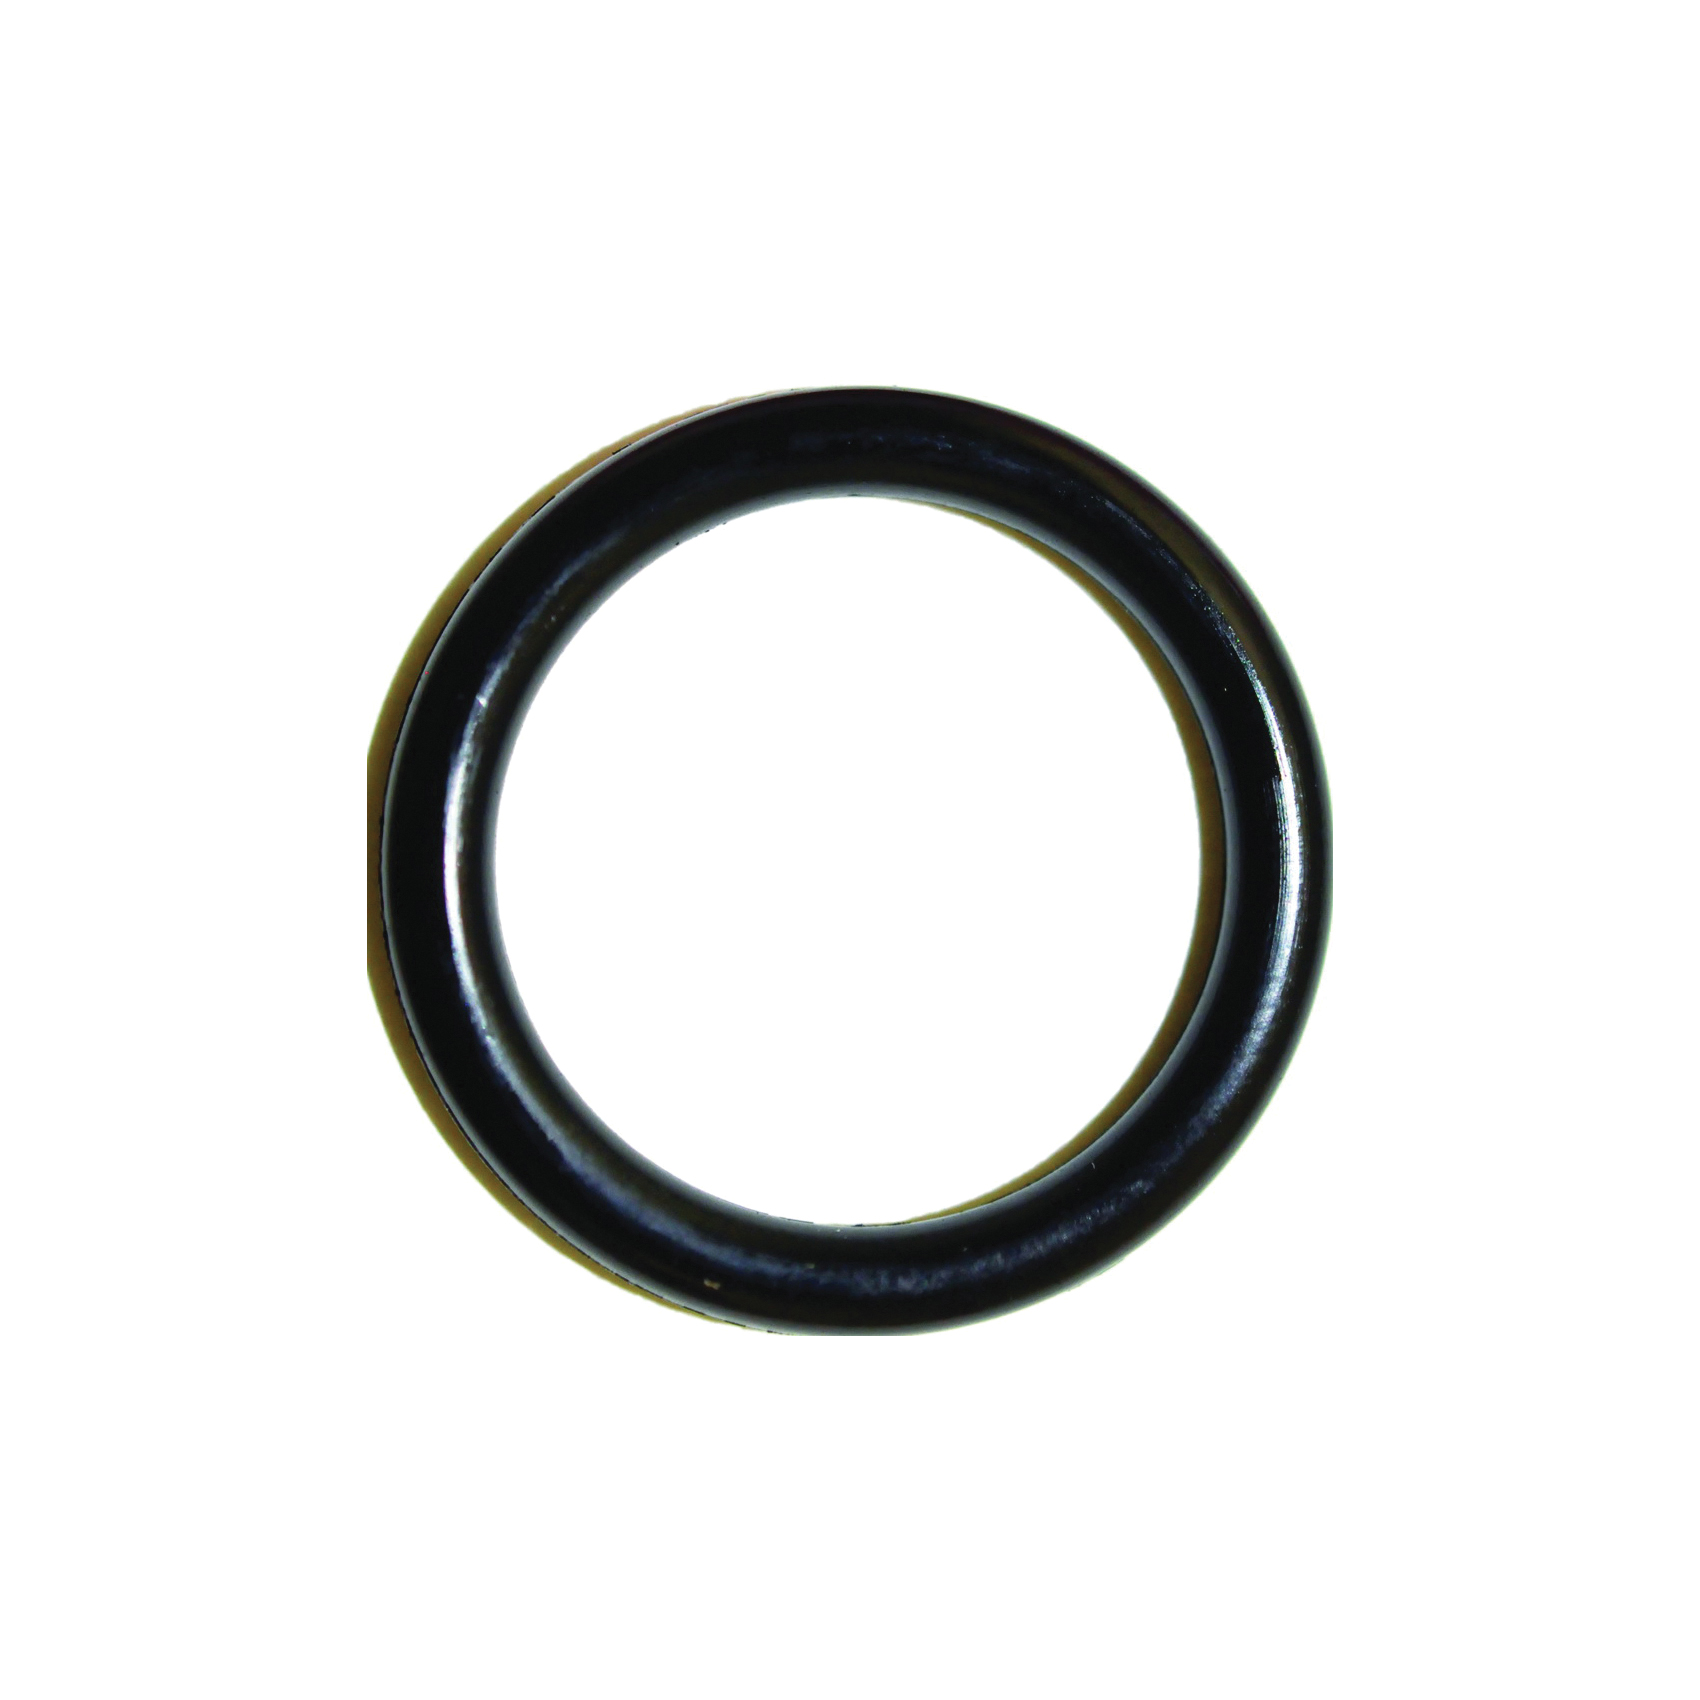 Picture of Danco 35730B Faucet O-Ring, #13, 11/16 in ID x 7/8 in OD Dia, 3/32 in Thick, Buna-N